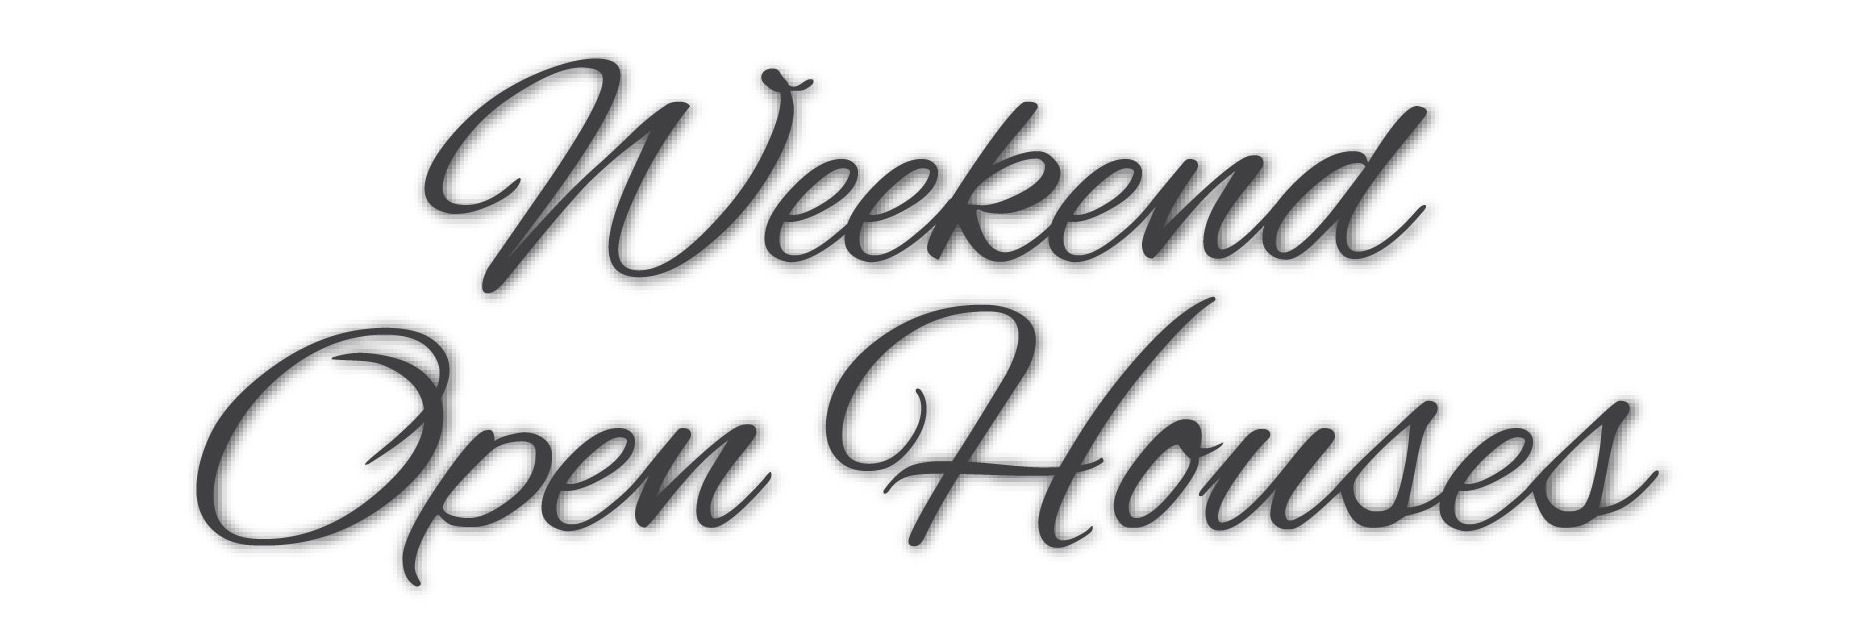 4/20/17 WEEKEND OPEN HOUSES | North Scottsdale, Arizona 85255 & 85262